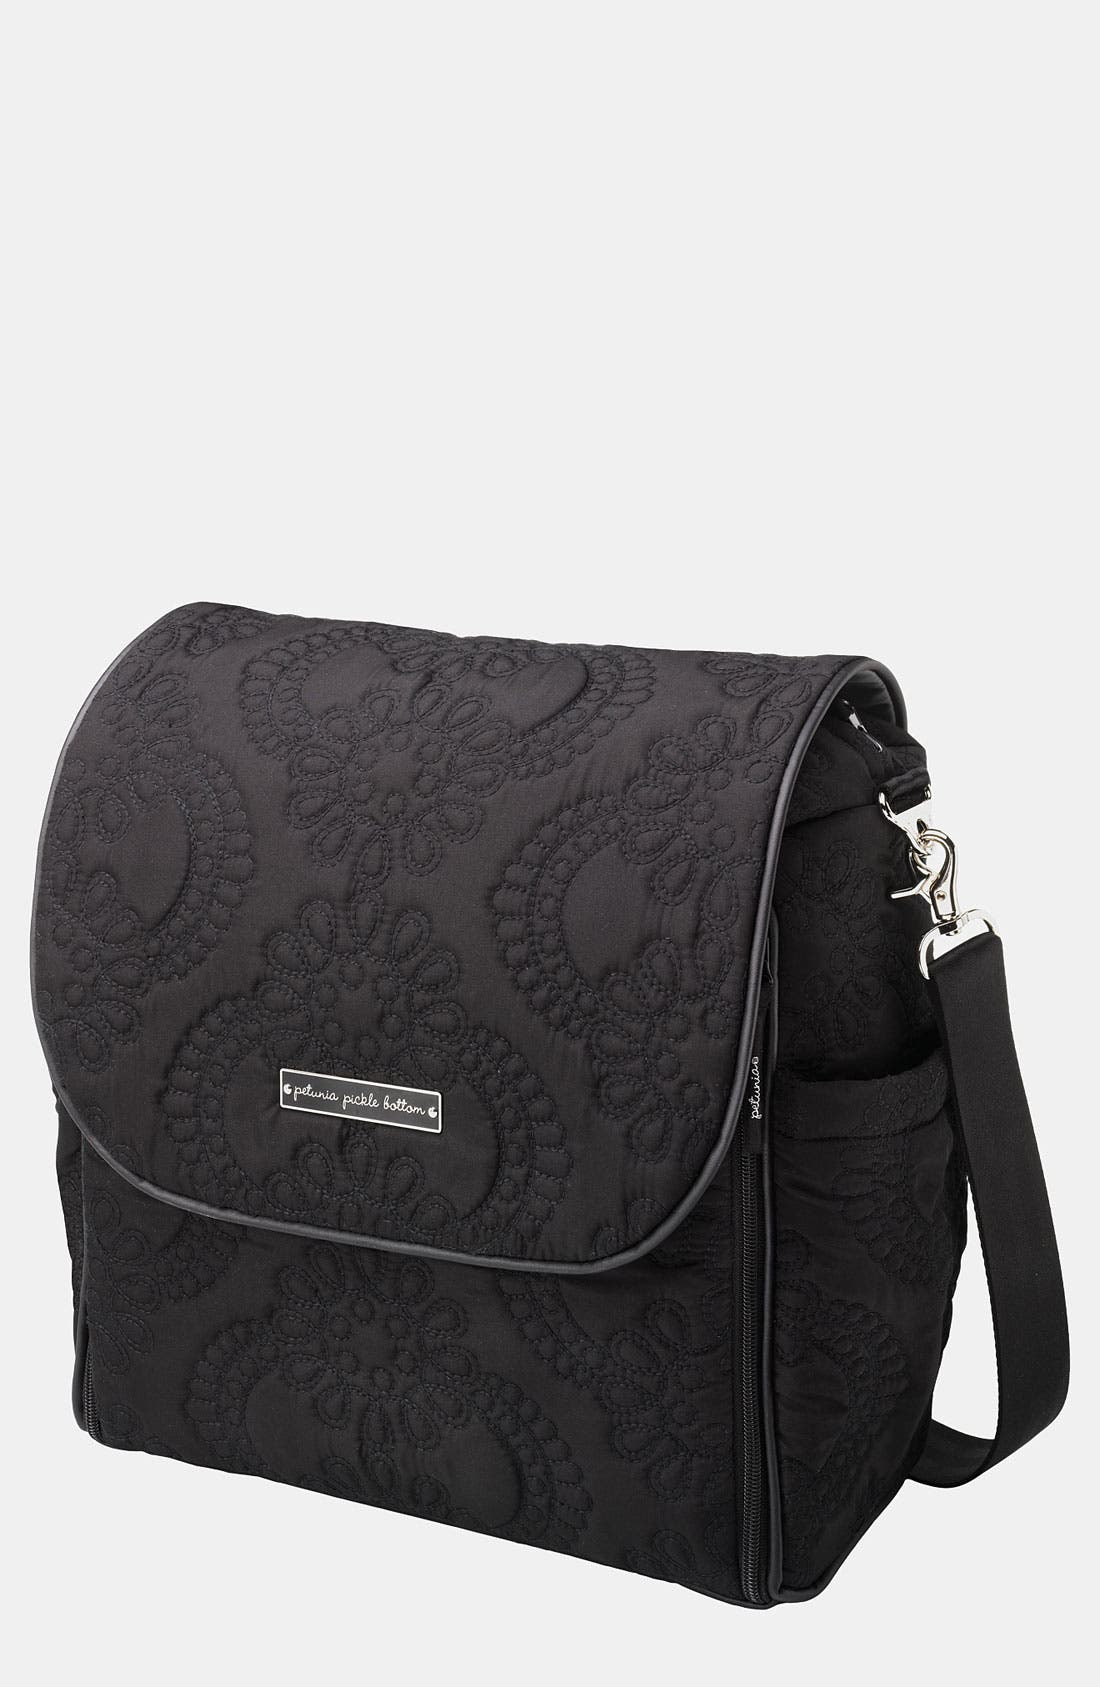 Main Image - Petunia Pickle Bottom 'Embossed Boxy' Magnetic Closure Backpack Diaper Bag